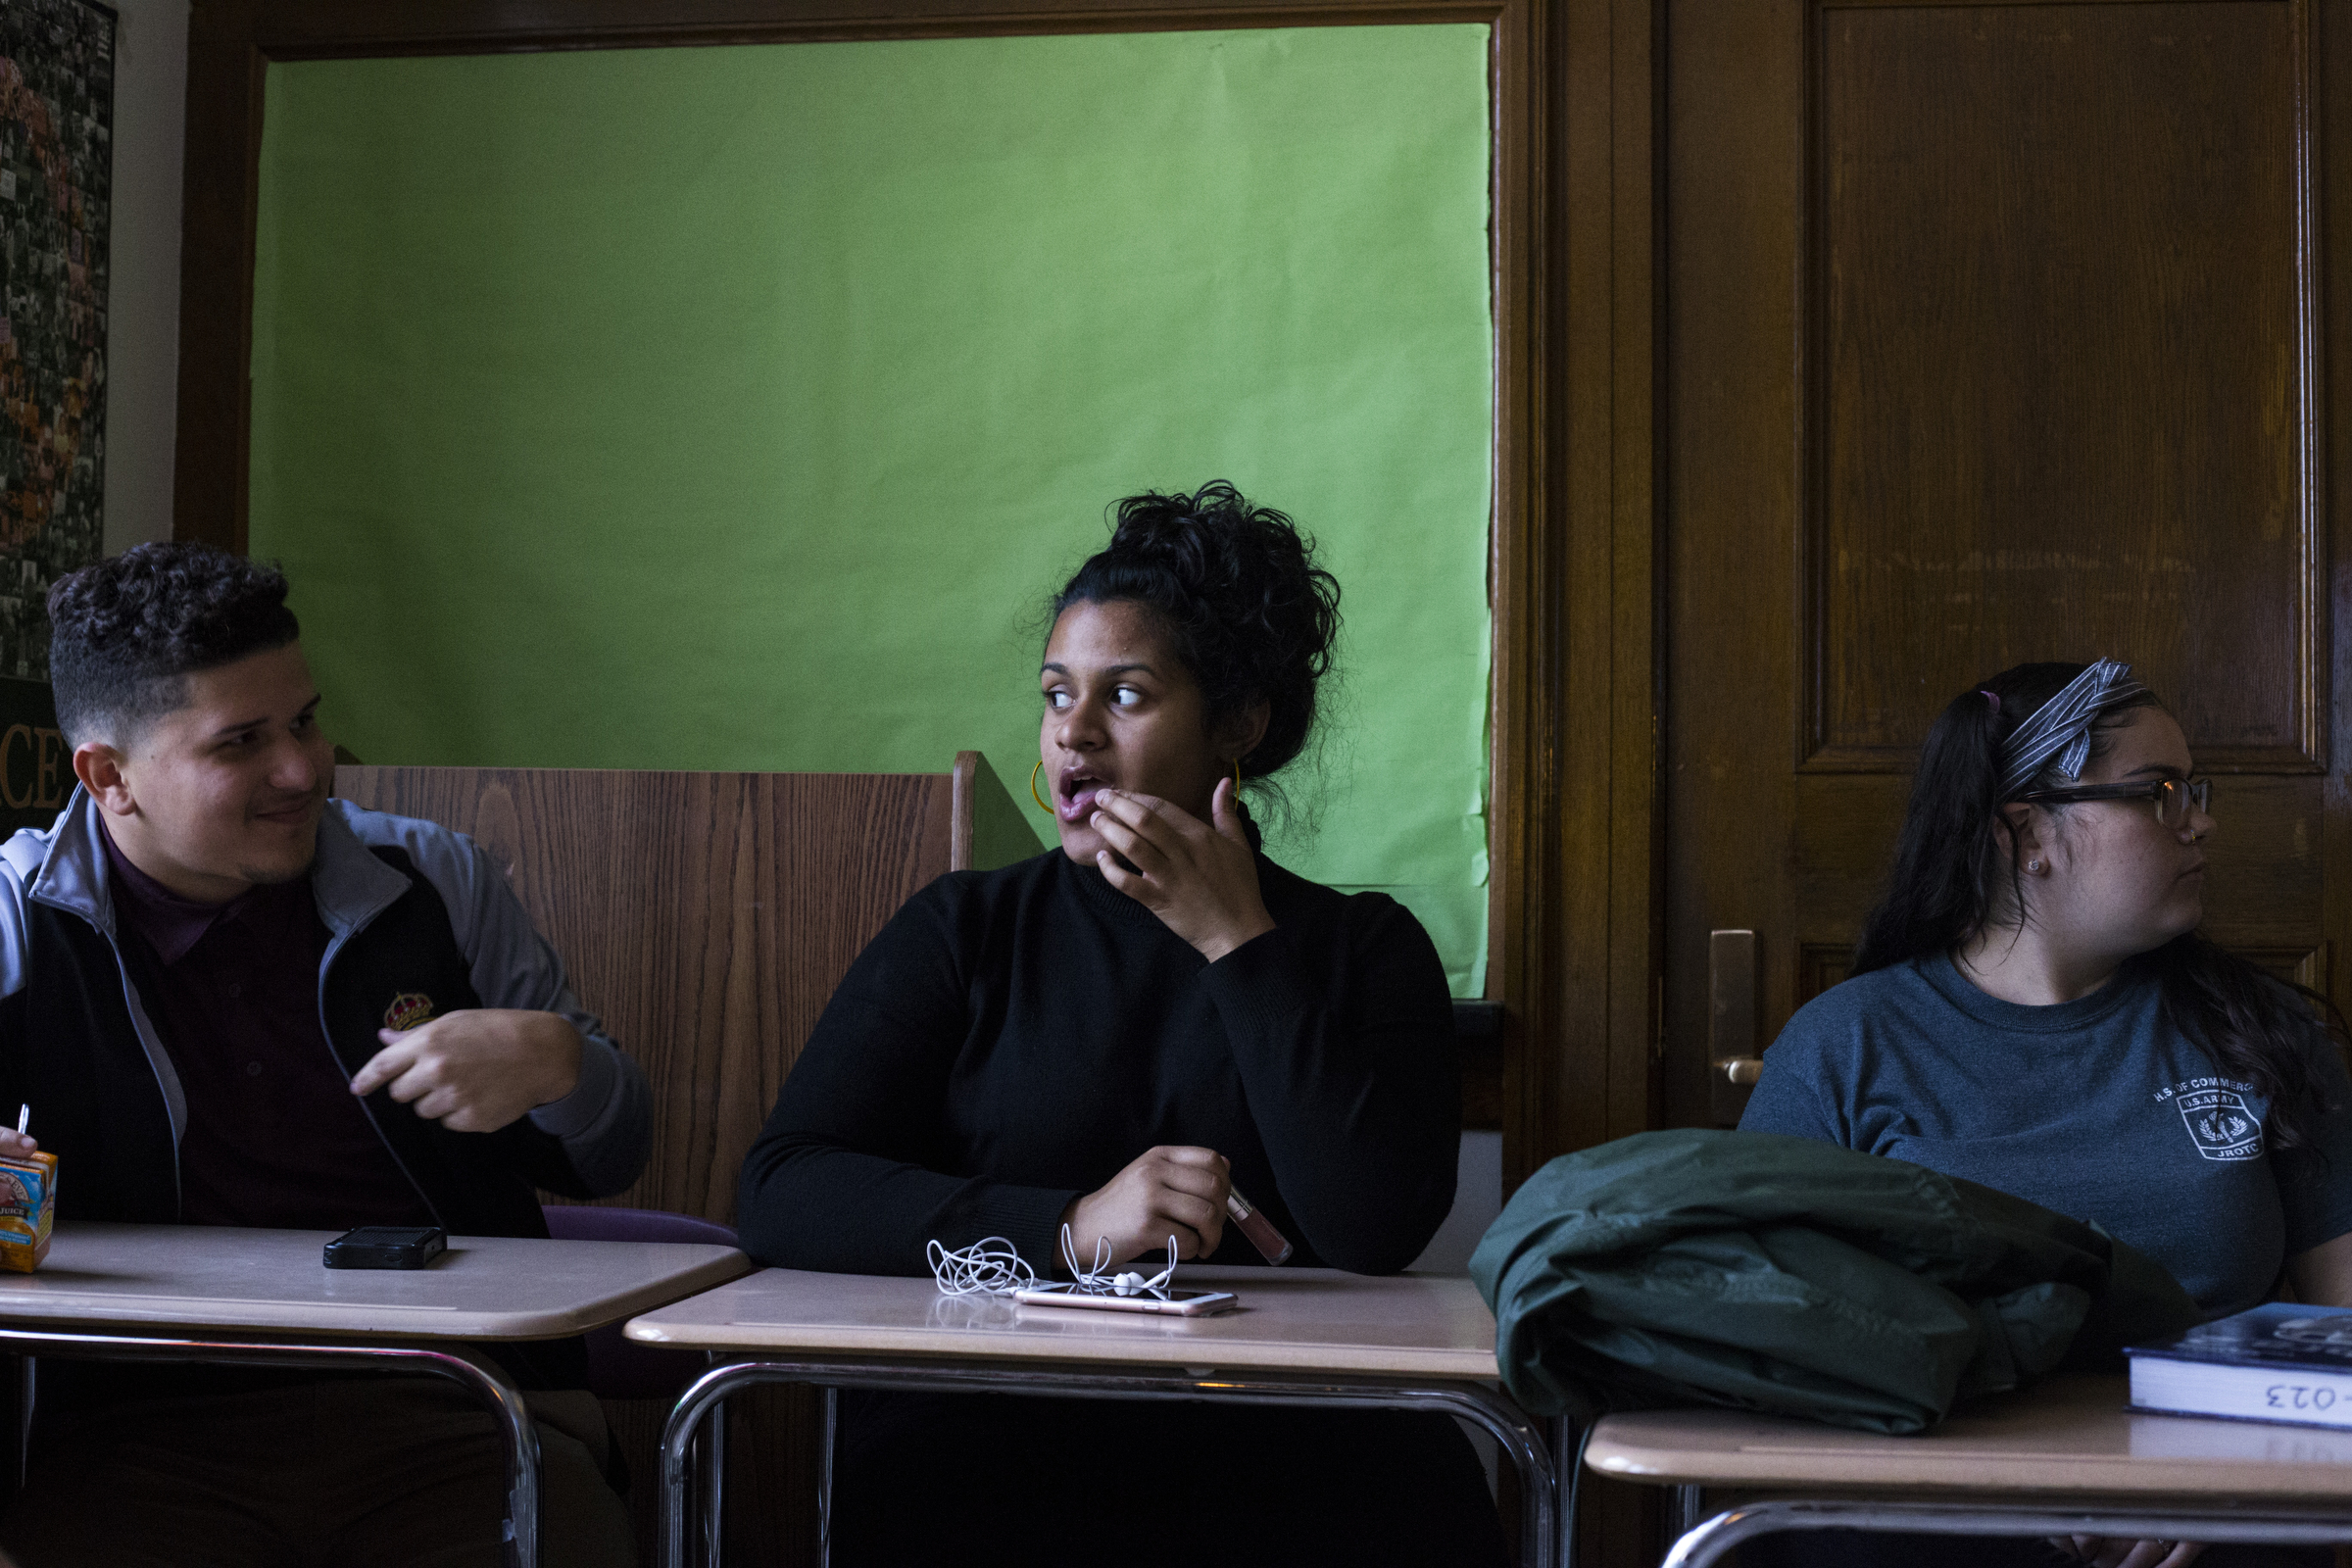 Aliza Gonzalez, 17, puts on lip gloss while talking to friends in her Journalism class at the High School of Commerce in Springfield, Mass., on Monday, September, 11, 2017.